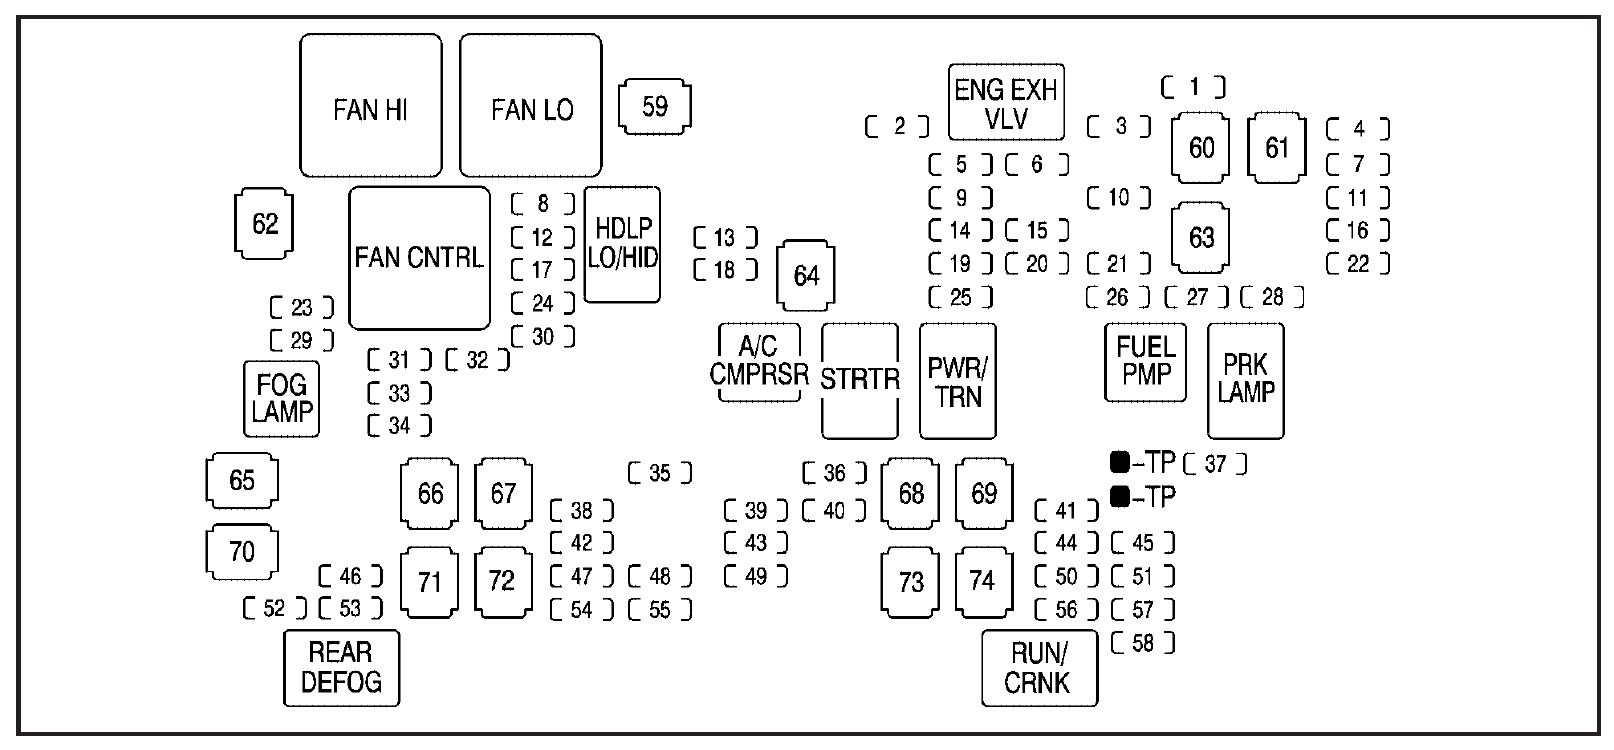 hight resolution of 2008 gmc sierra 2500hd fuse box diagrammedium resolution of gmc sierra fuse box engine compartment